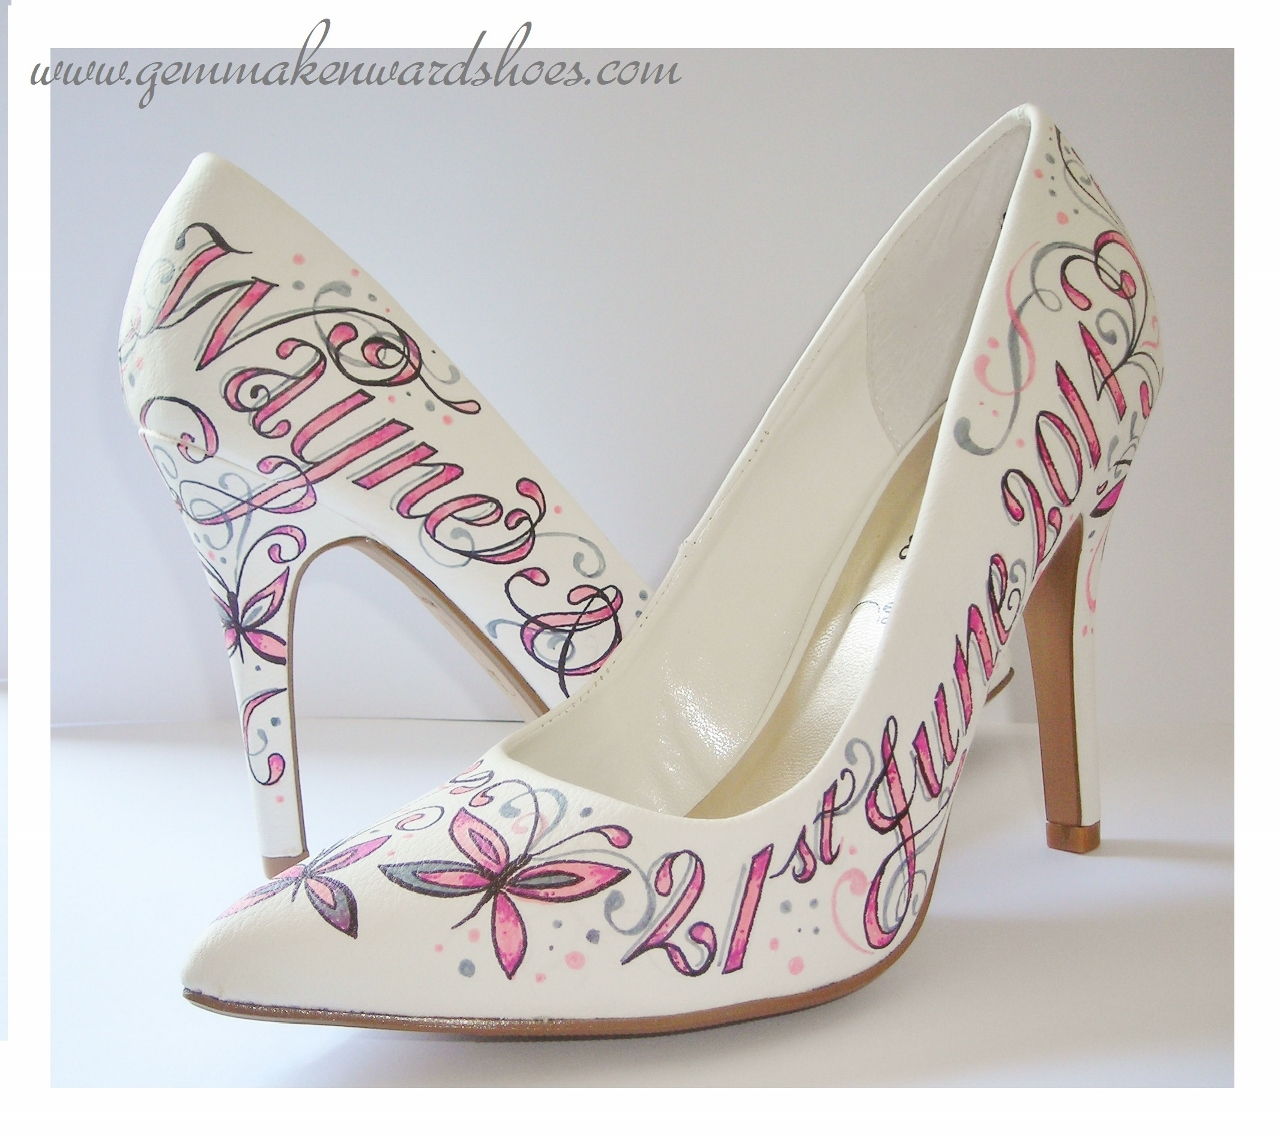 Pink and white hand painted wedding shoes for a bride in Somerset.